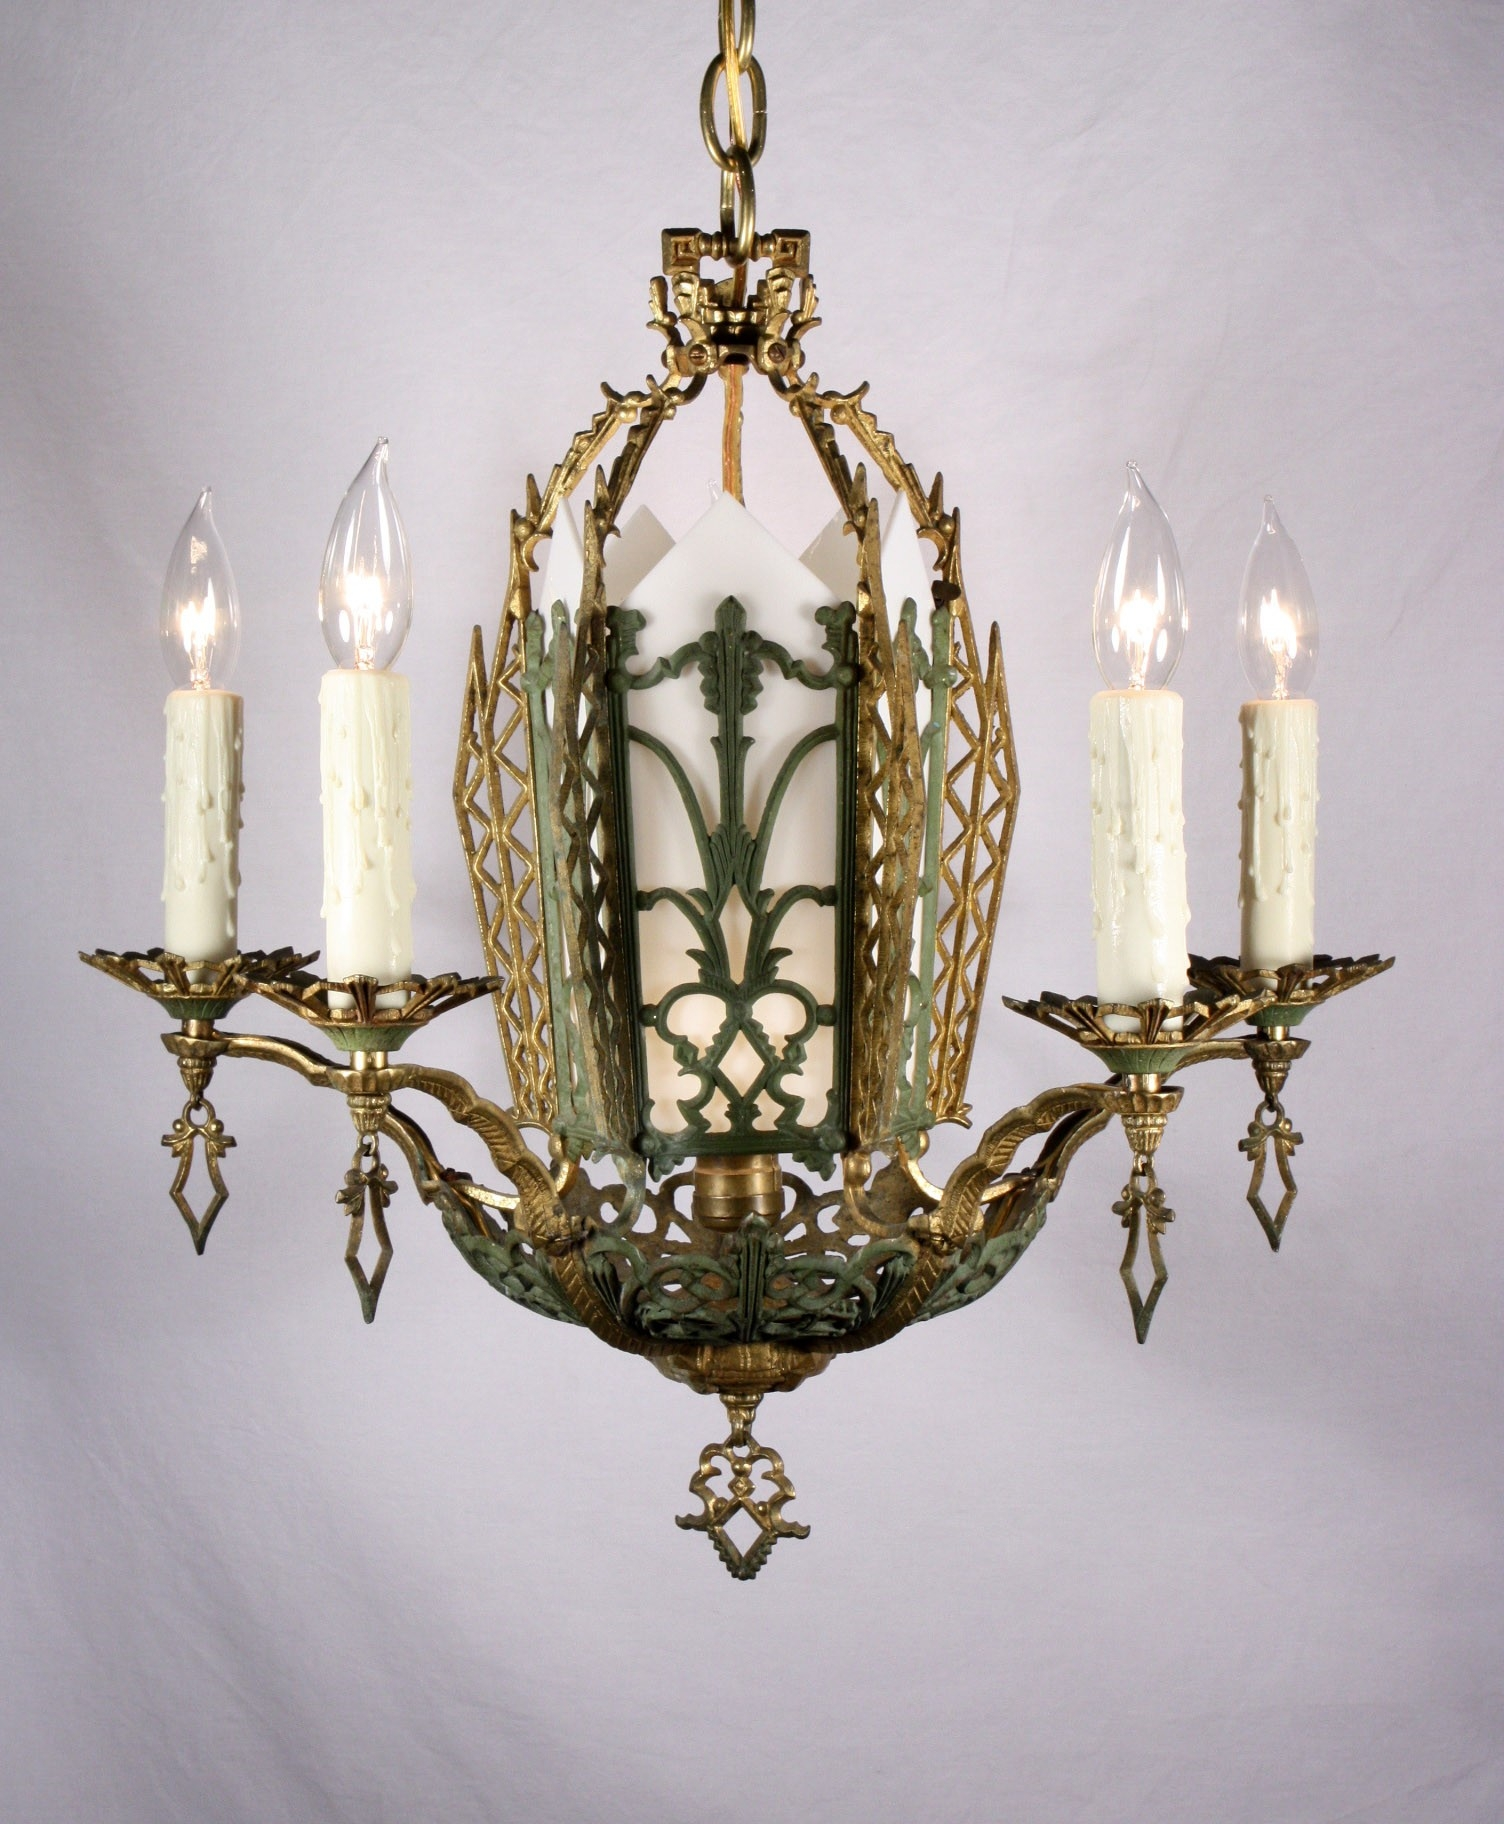 Splendid Antique Six Light Cast Brass Art Deco Chandelier With Throughout Art Deco Chandelier (Image 14 of 15)